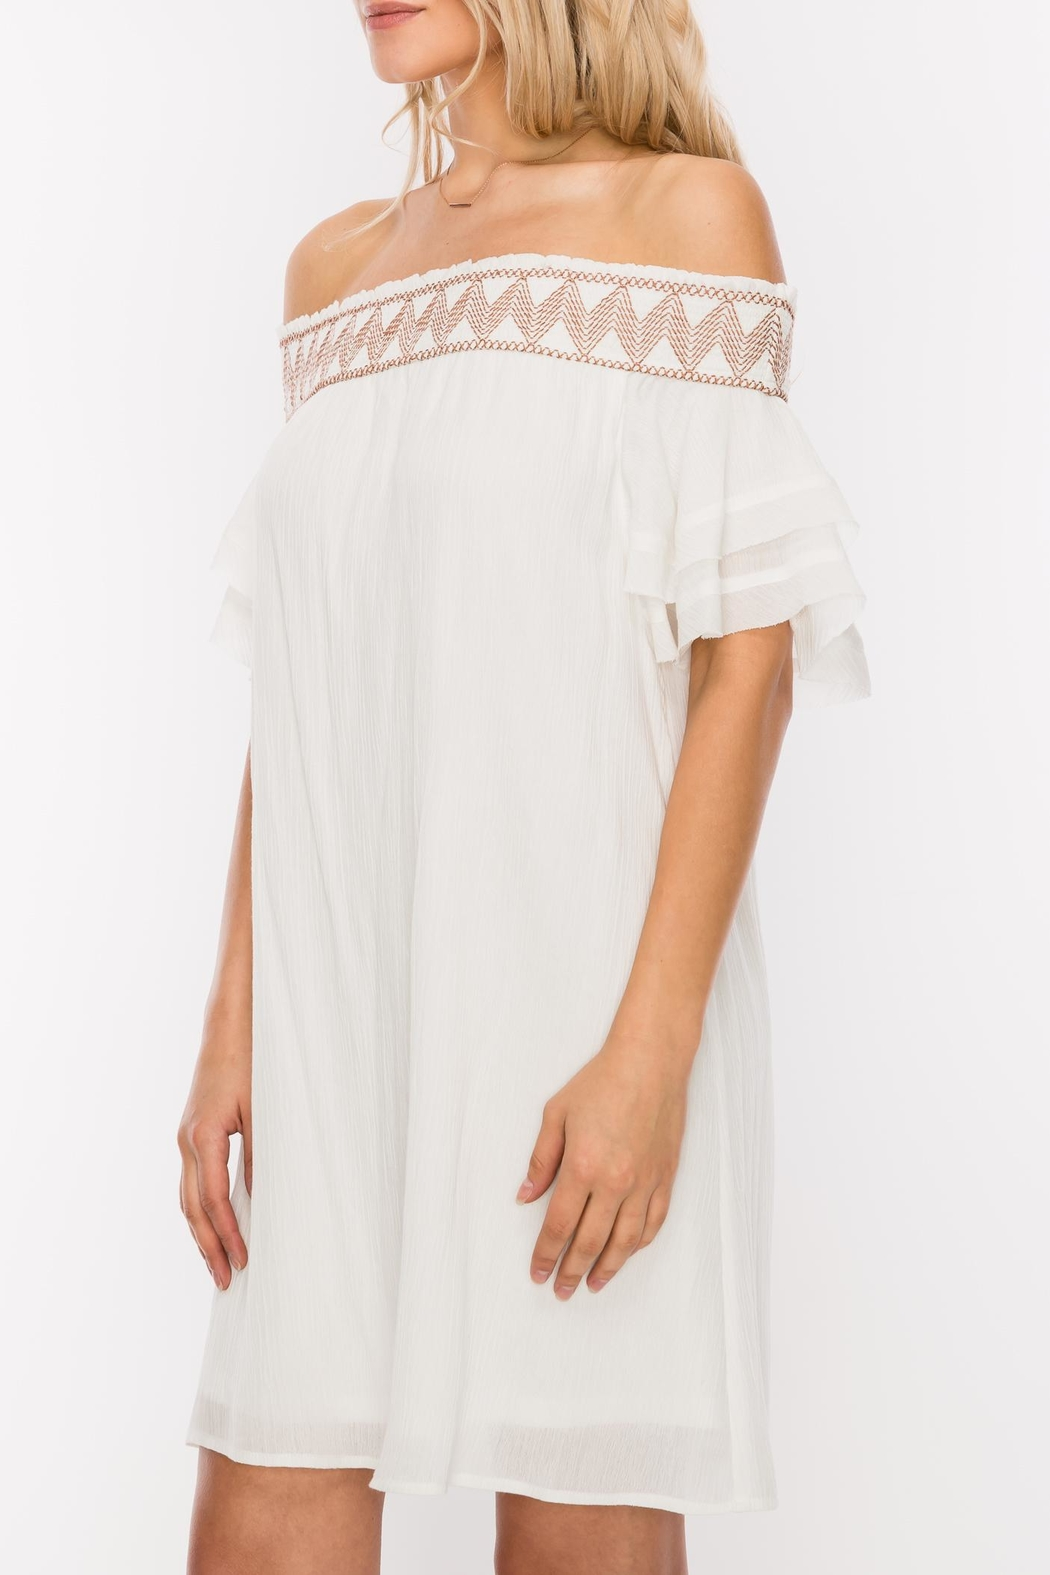 HYFVE Stitch Embroidered Dress - Side Cropped Image